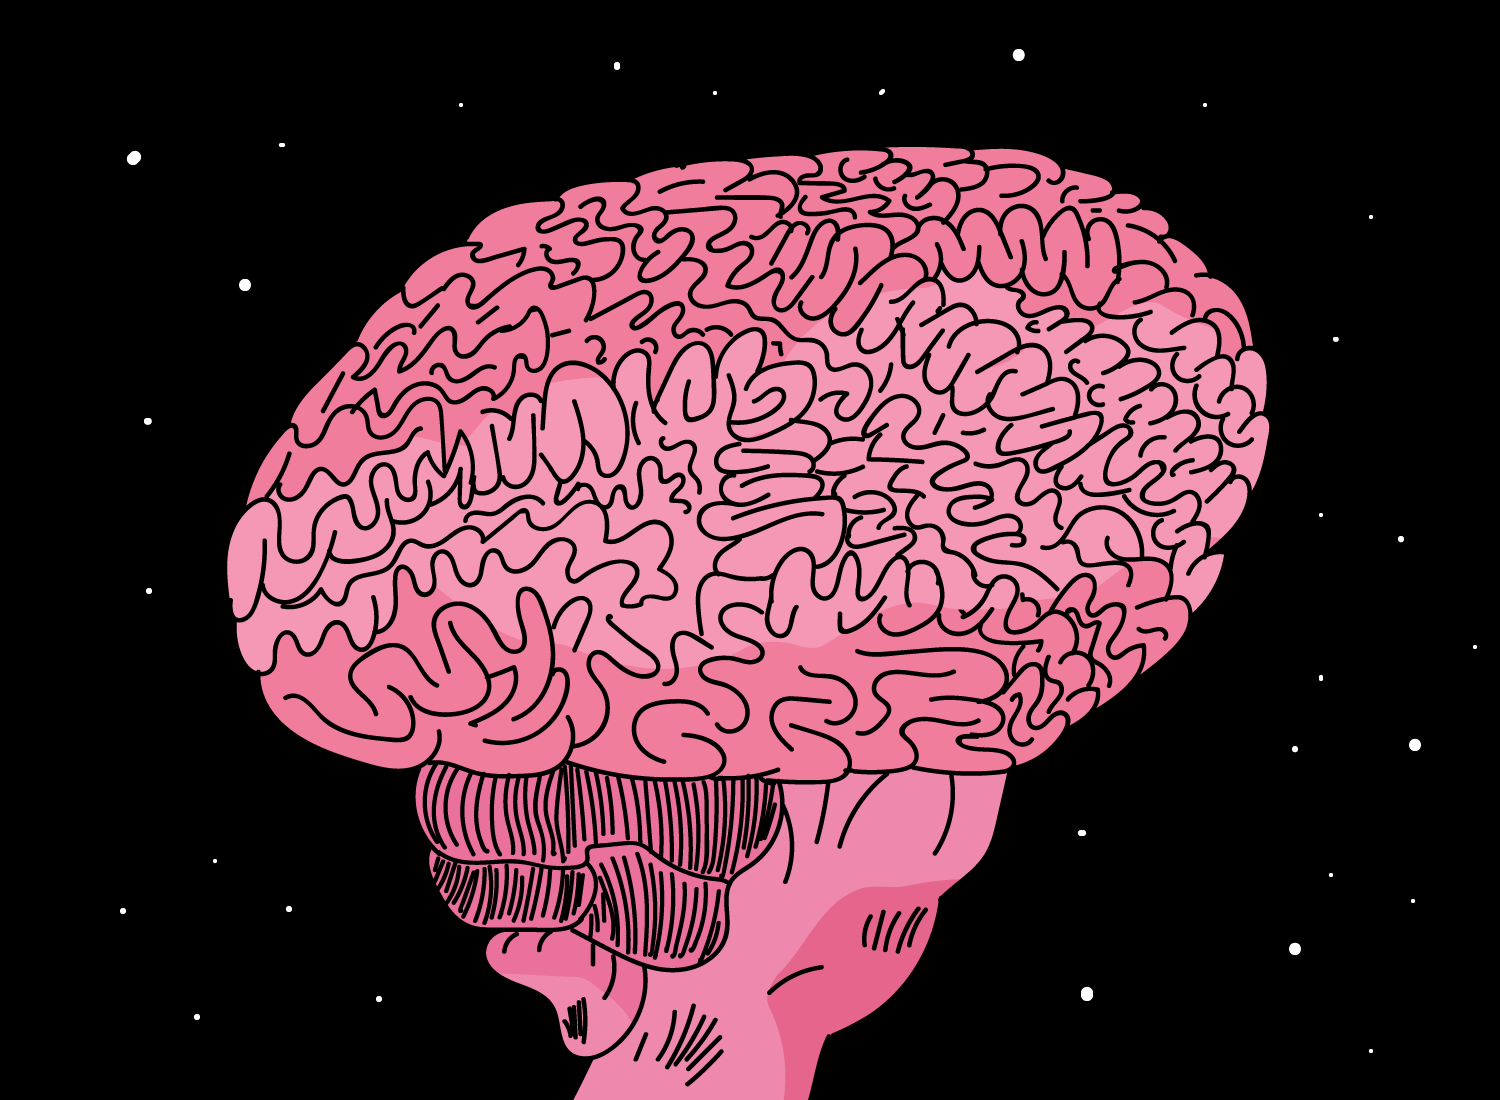 brain drawing cartoon illustration